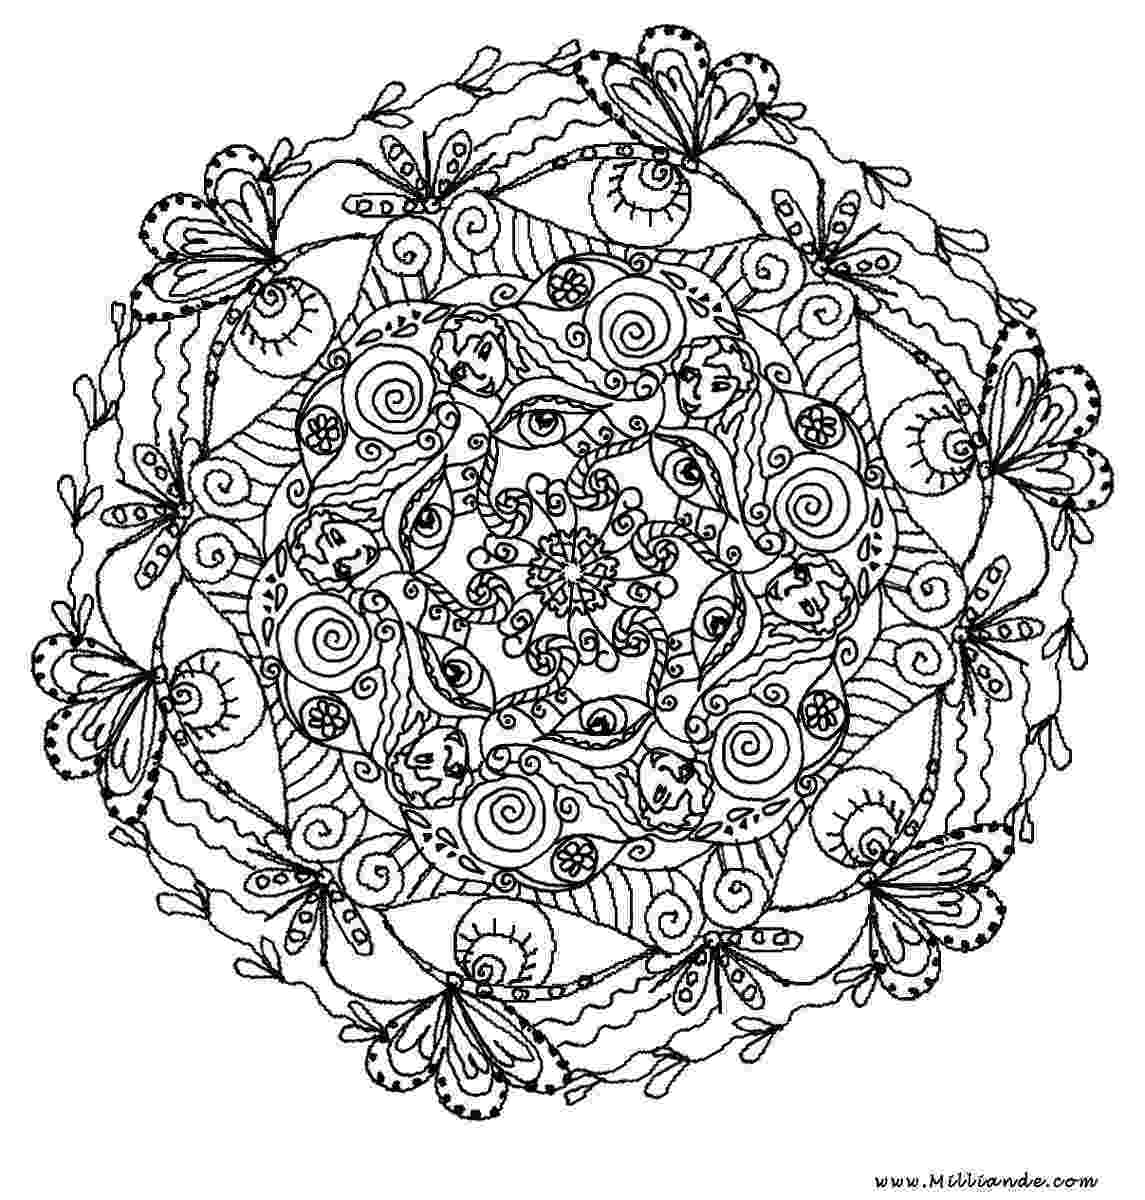 printable mandala coloring pages for adults free printable mandala coloring pages for adults printable adults coloring mandala for pages